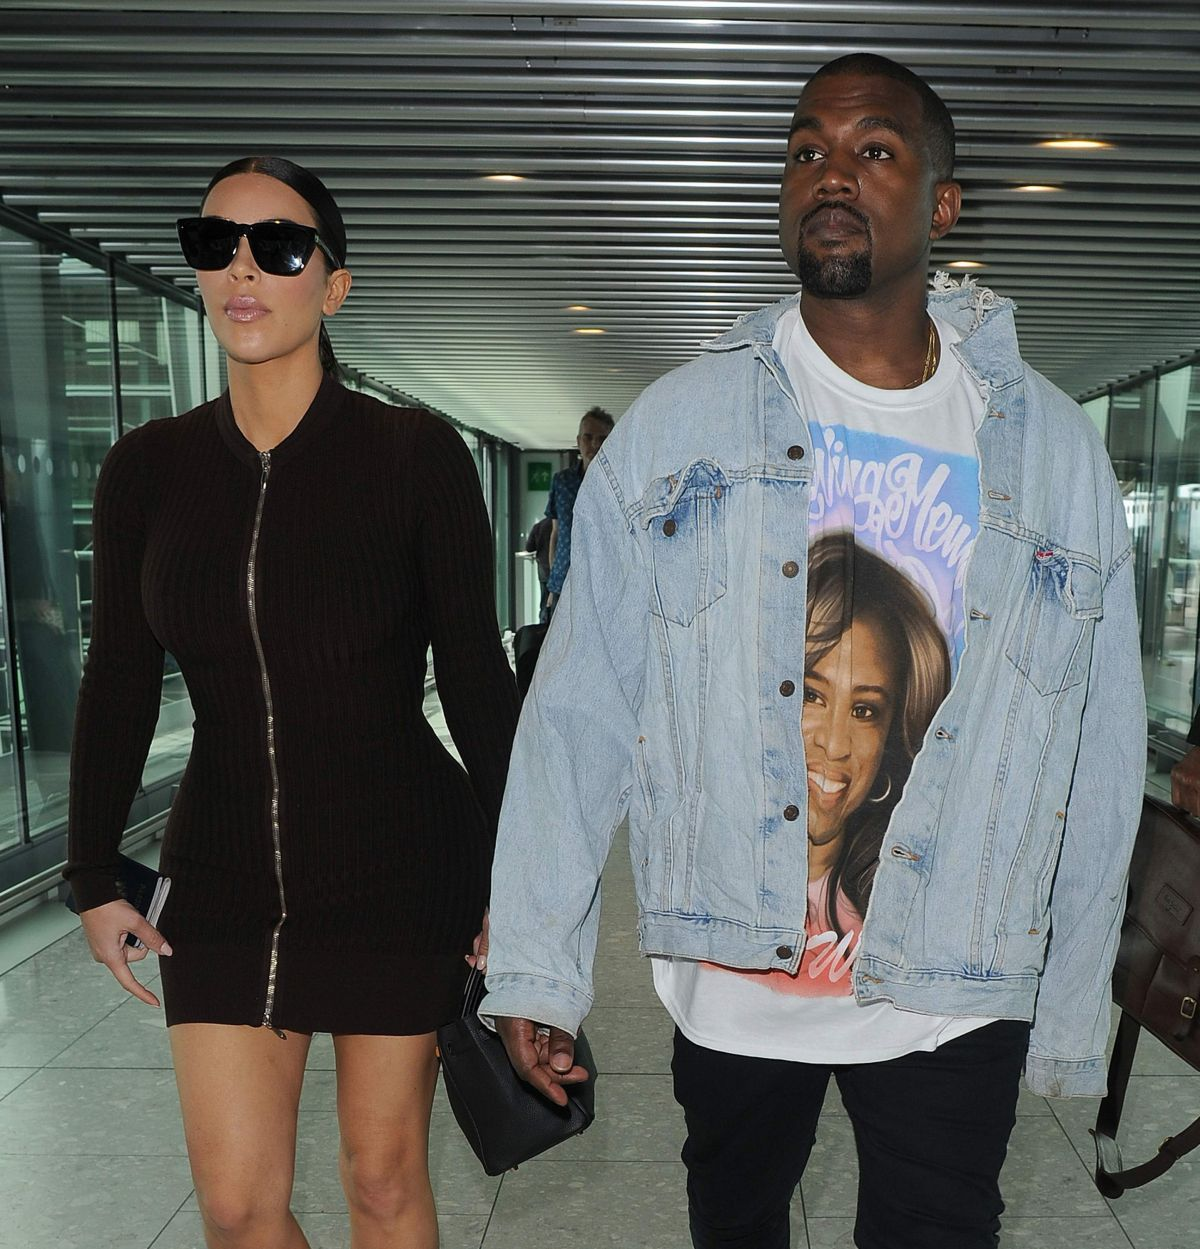 KIM KARDASHIAN and Kanye West at Heathrow Airport in London 05/22/2016